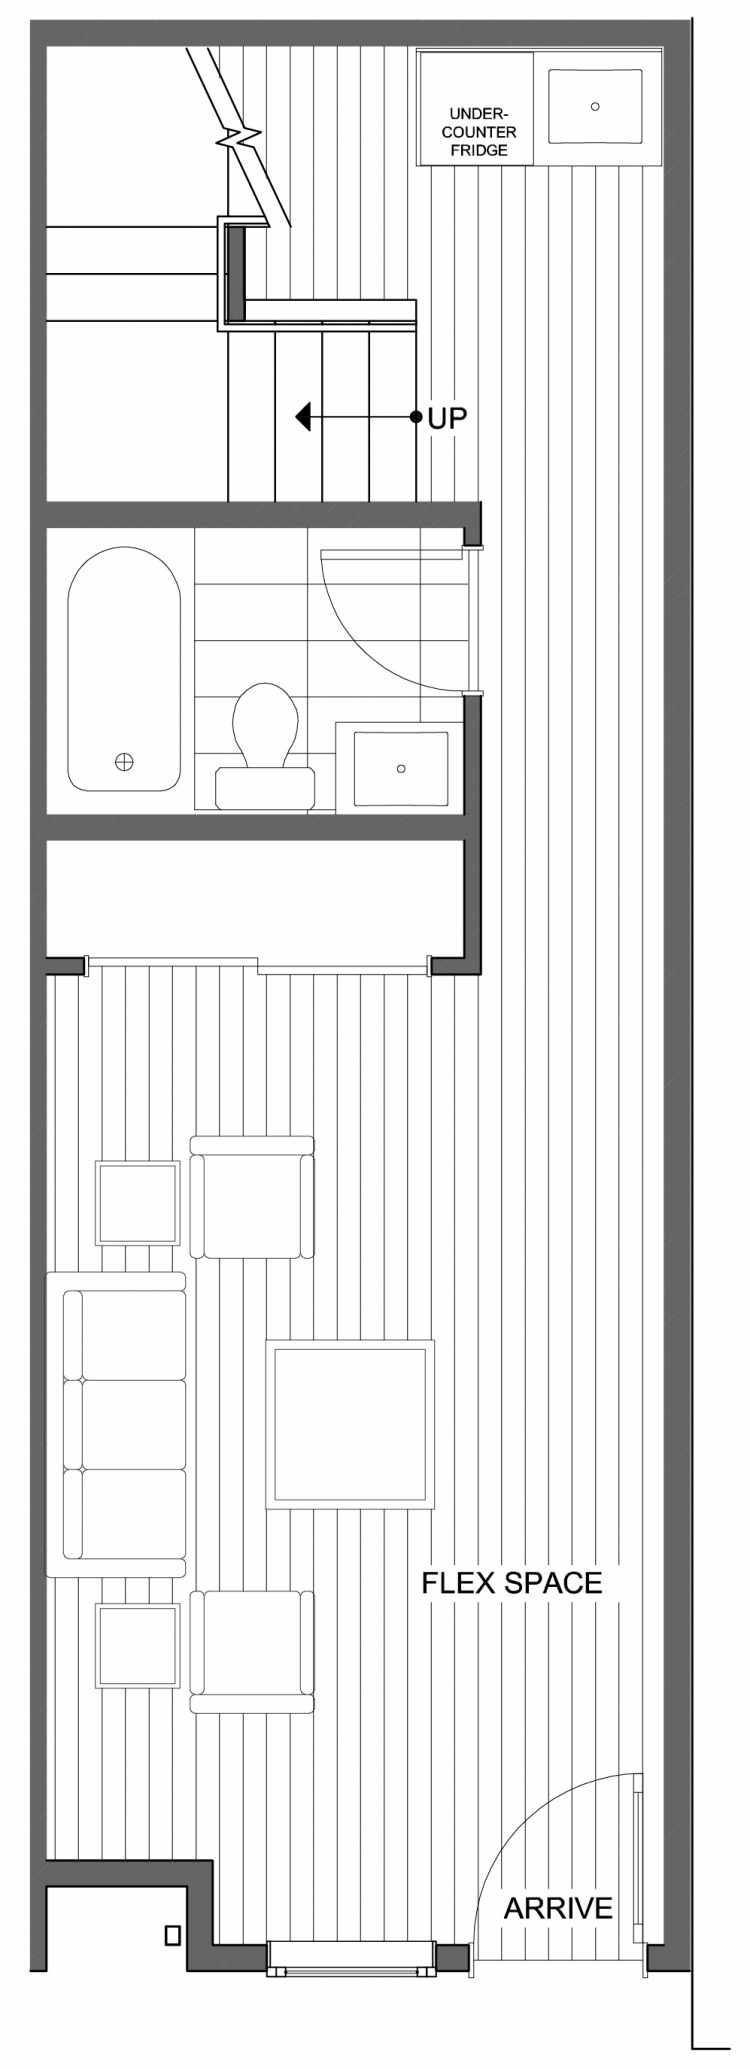 First Floor Plan of 806G N 46th St, One of the Nino 15 East Townhomes by Isola Homes